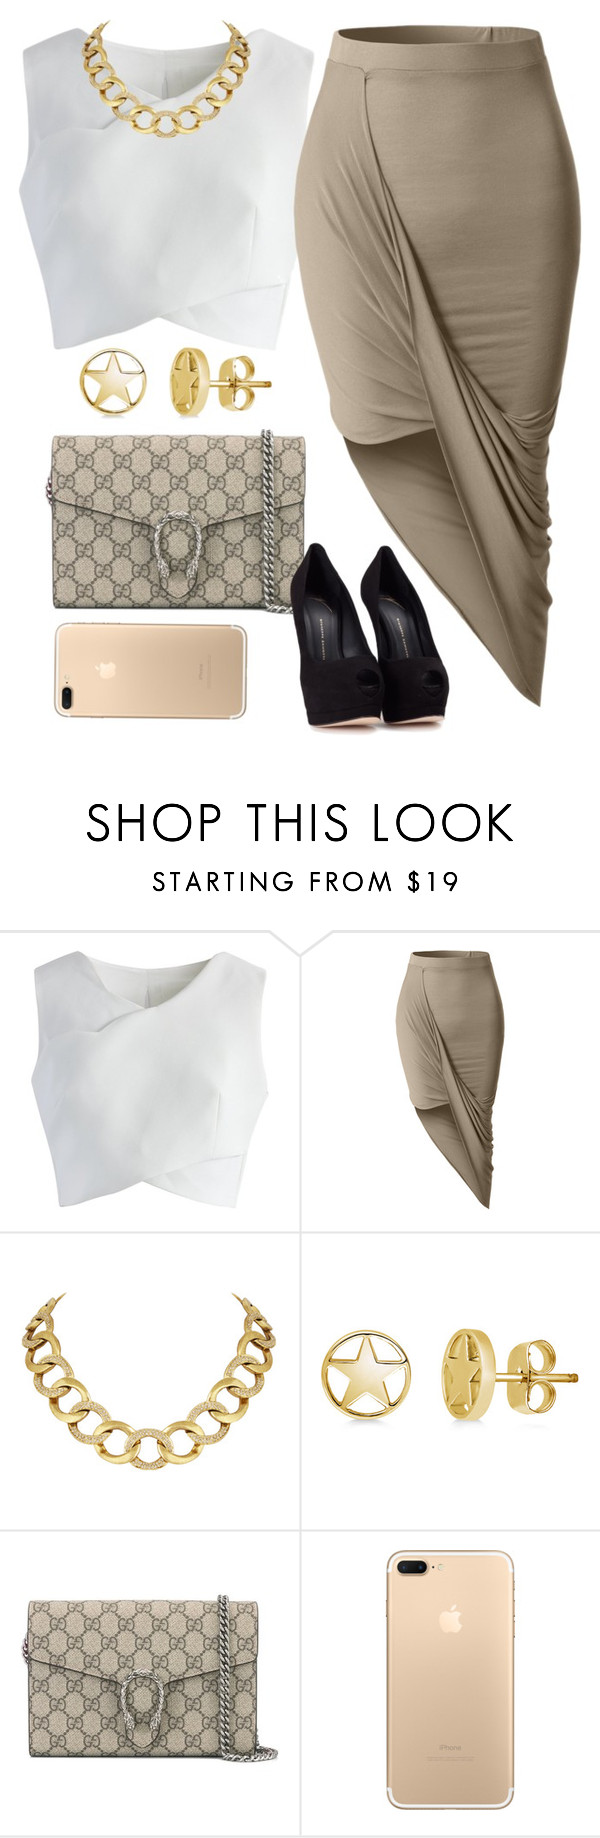 """""""Sans titre #16"""" by kabengeleleslie on Polyvore featuring mode, Chicwish, LE3NO, House of Harlow 1960, BERRICLE, Gucci et Giuseppe Zanotti"""